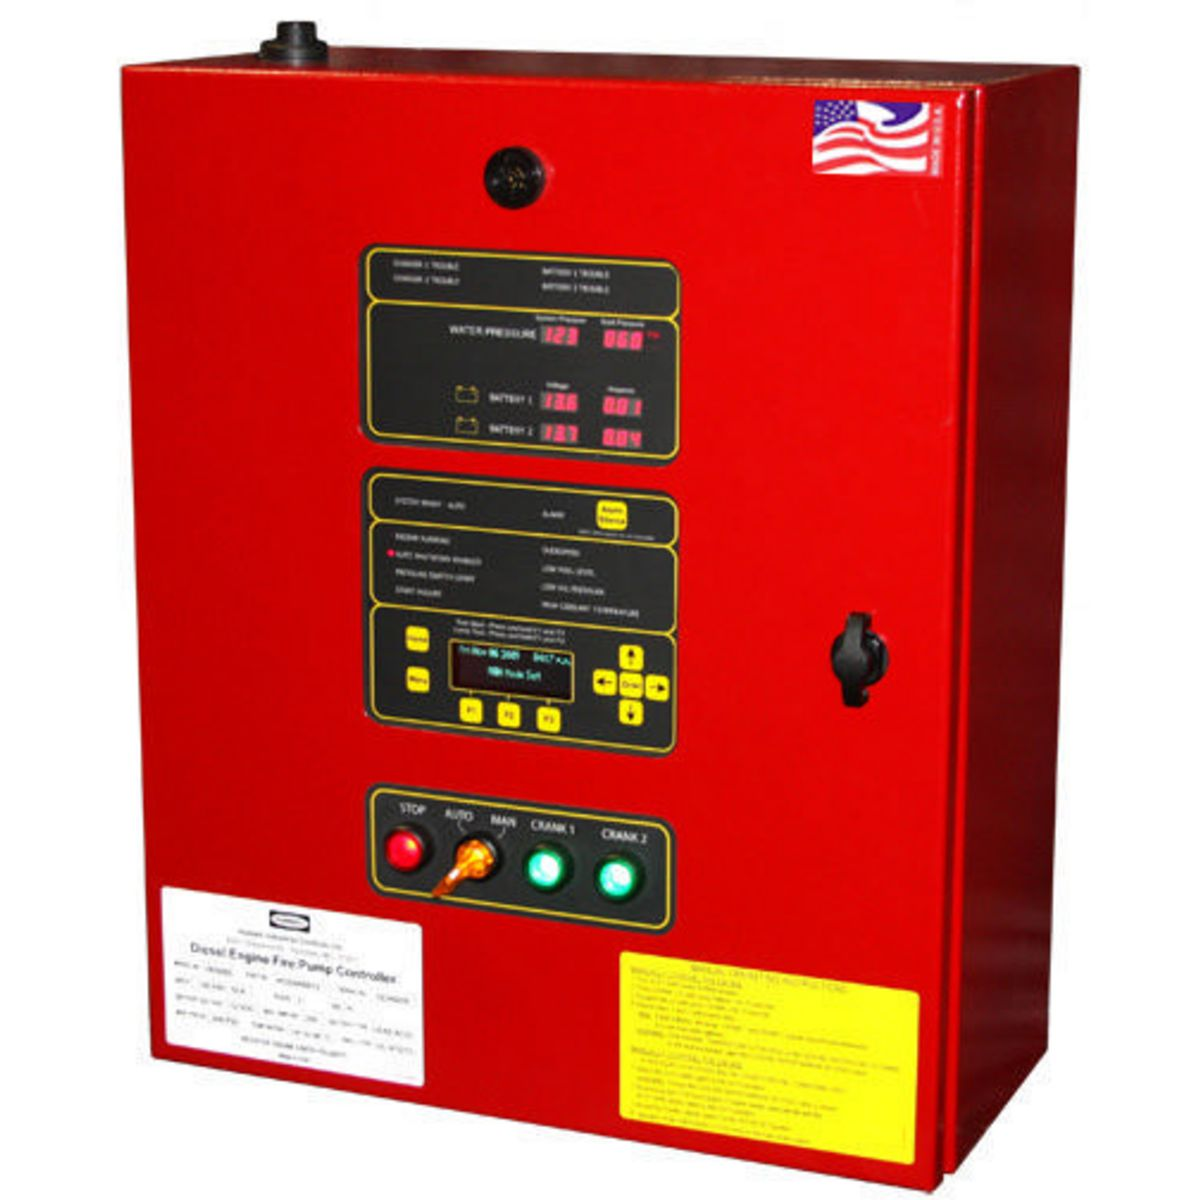 hchd5000 obsolete controllers fire pump controllers electrical rh hubbell com UL Jockey Pump Controller Joslyn Clark Fire Pump Controllers